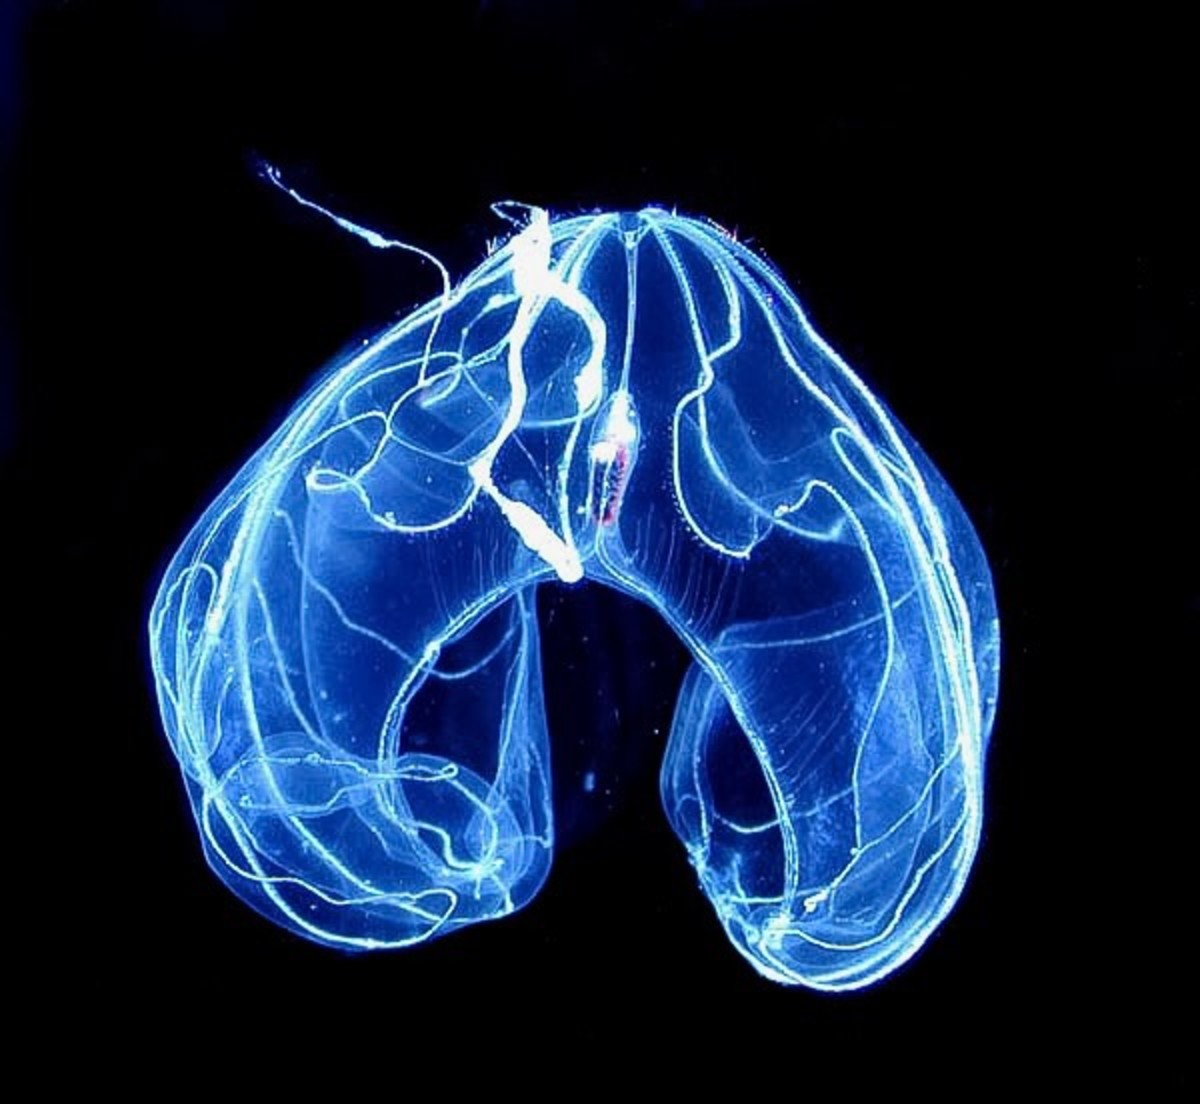 Bioluminescence: Light Production and Uses in Living Organisms